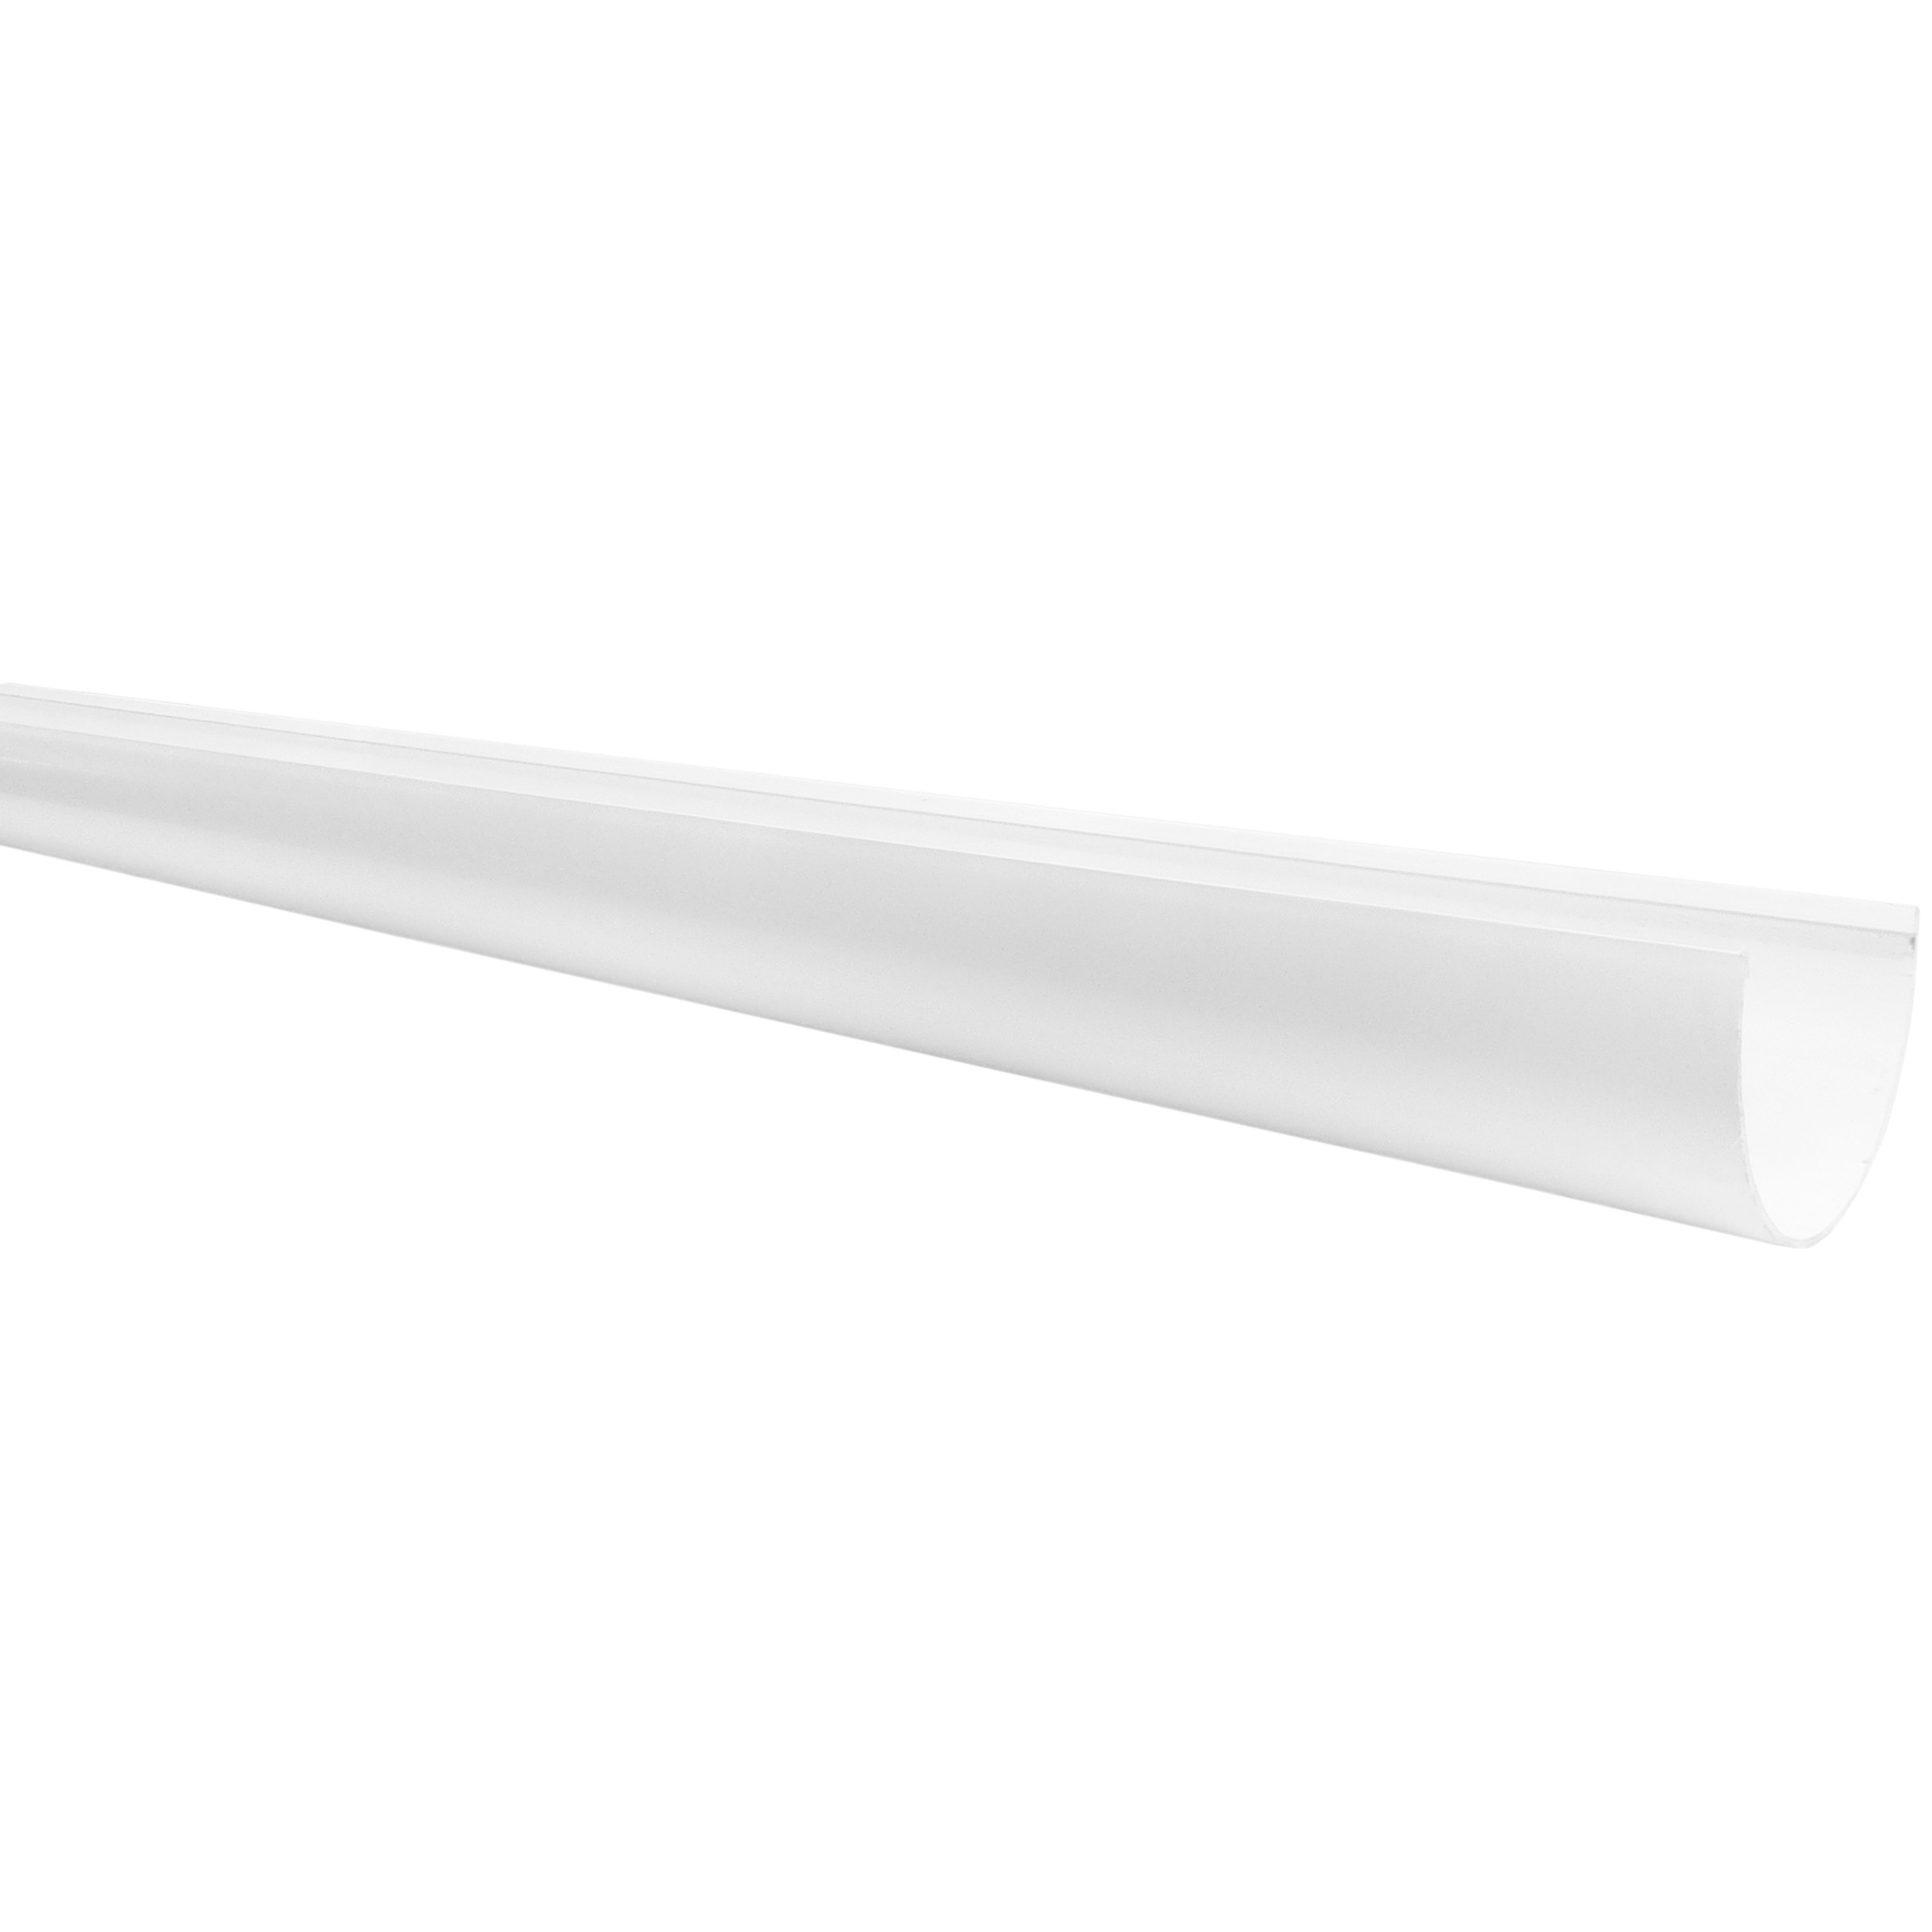 Freeflow 116mm Deep Gutter - White, 4 metre